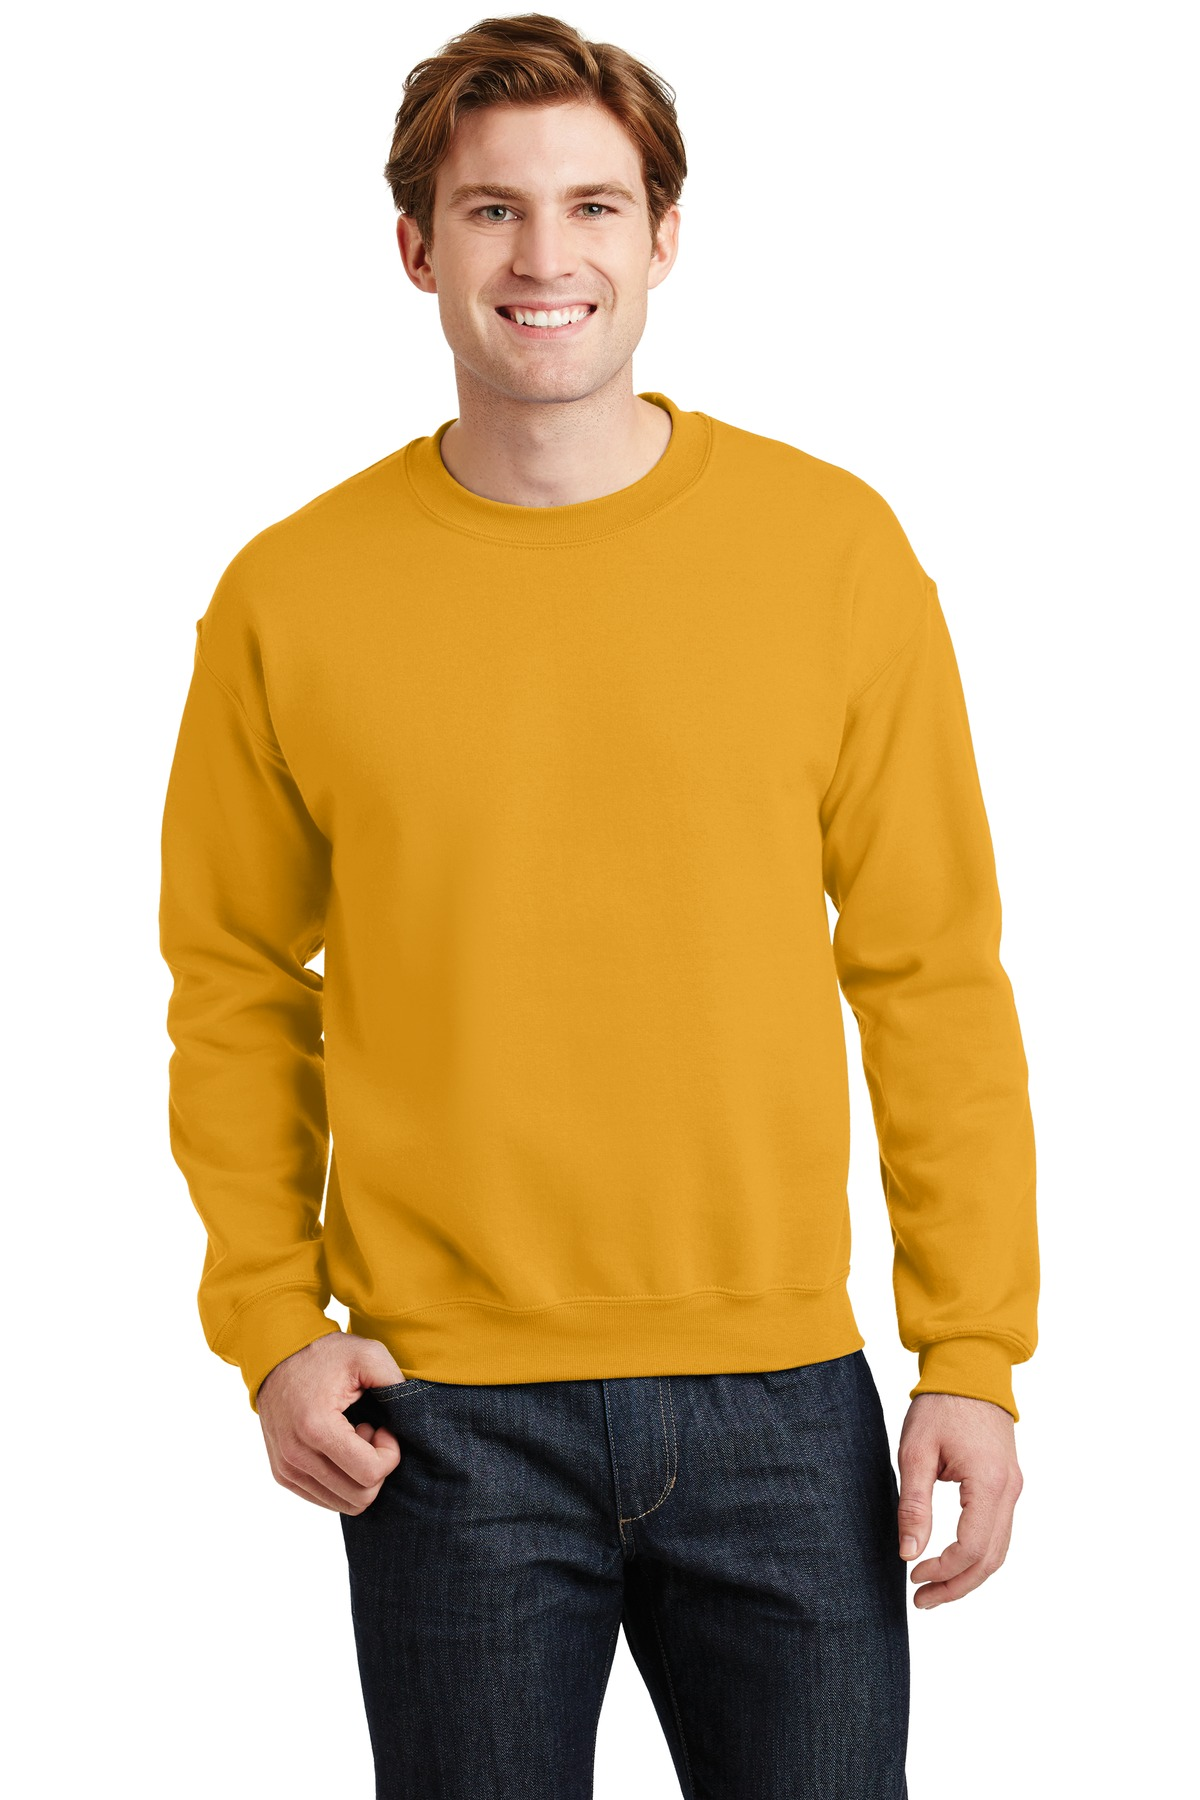 Gildan ®  - Heavy Blend™ Crewneck Sweatshirt.  18000 - Gold